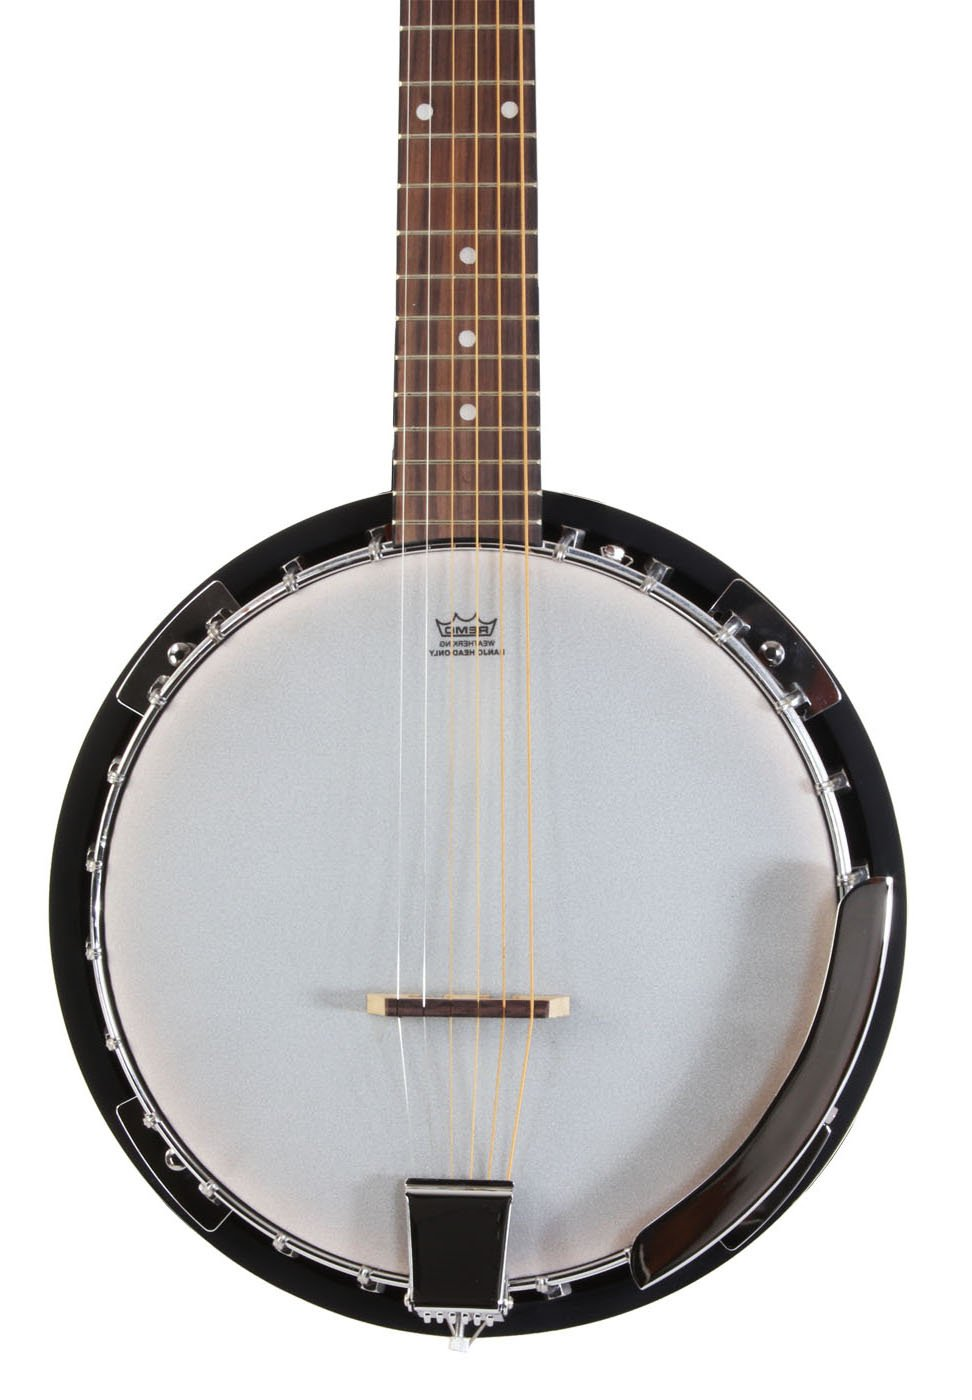 Jameson Guitars BJ006LH Left Handed 6 String Banjo Guitar with Closed Back Resonator and 24 Brackets